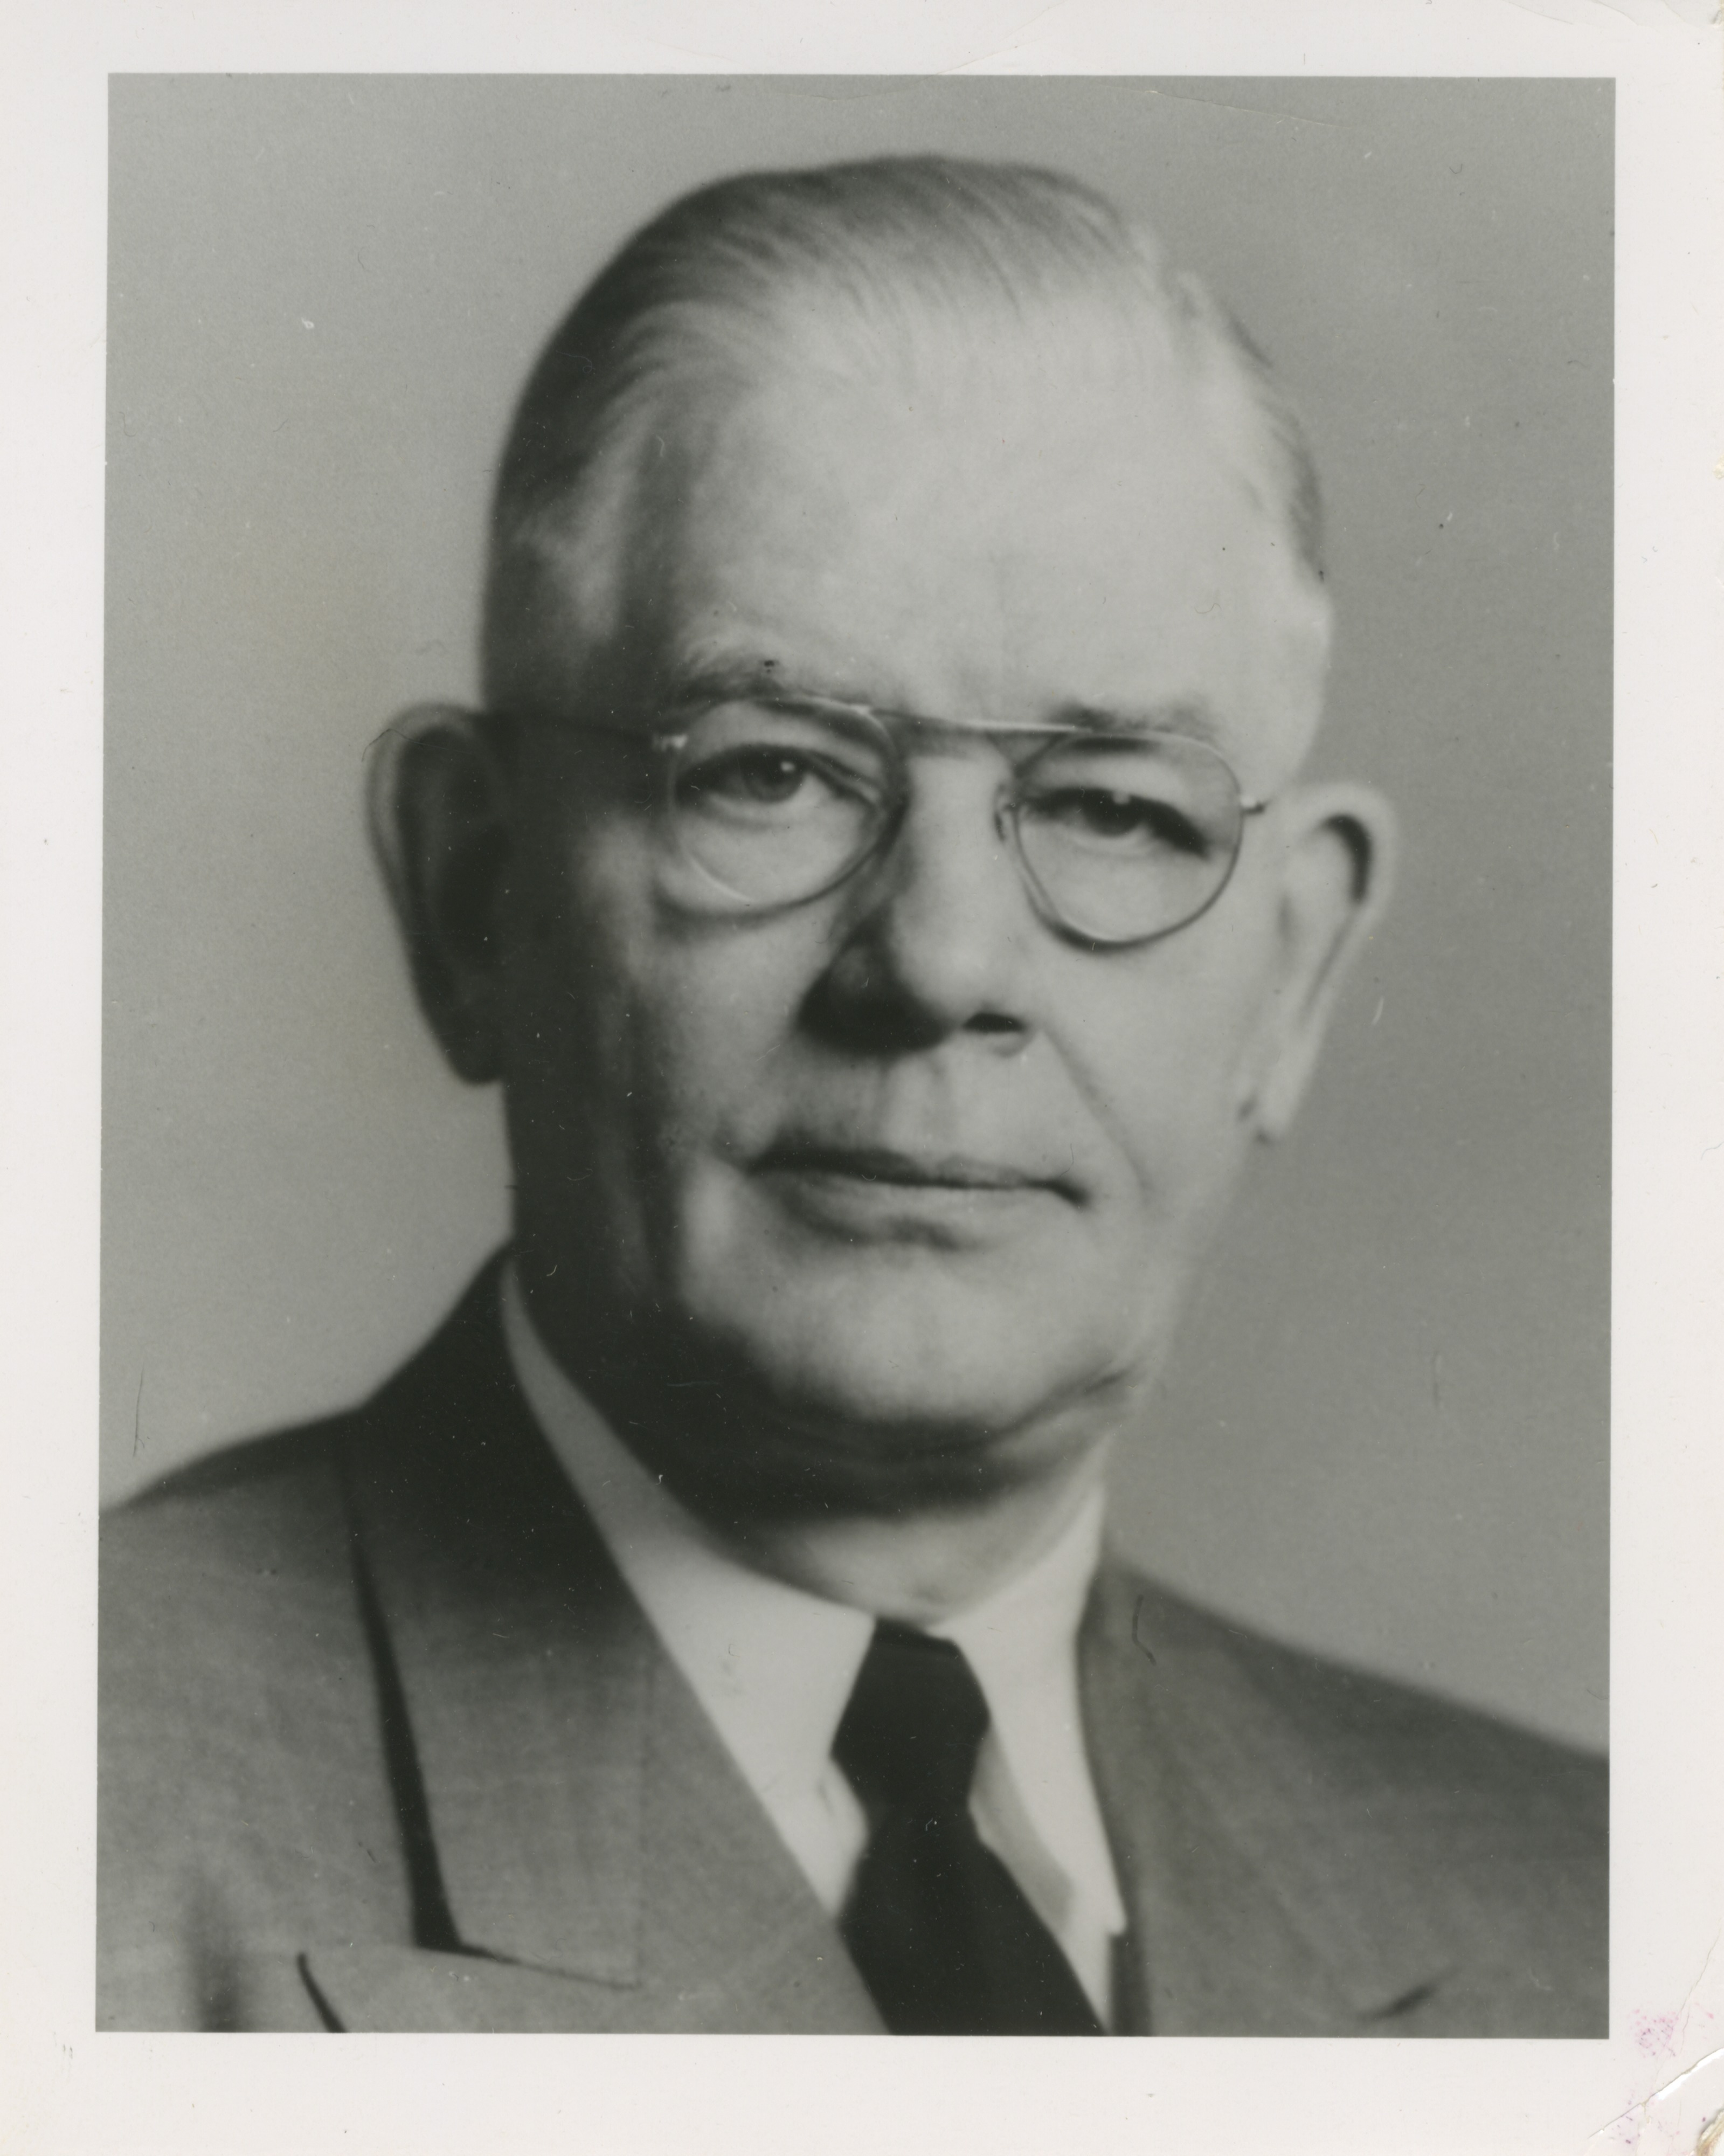 Prof. Earnest Boyce, University of Michigan, Undated image